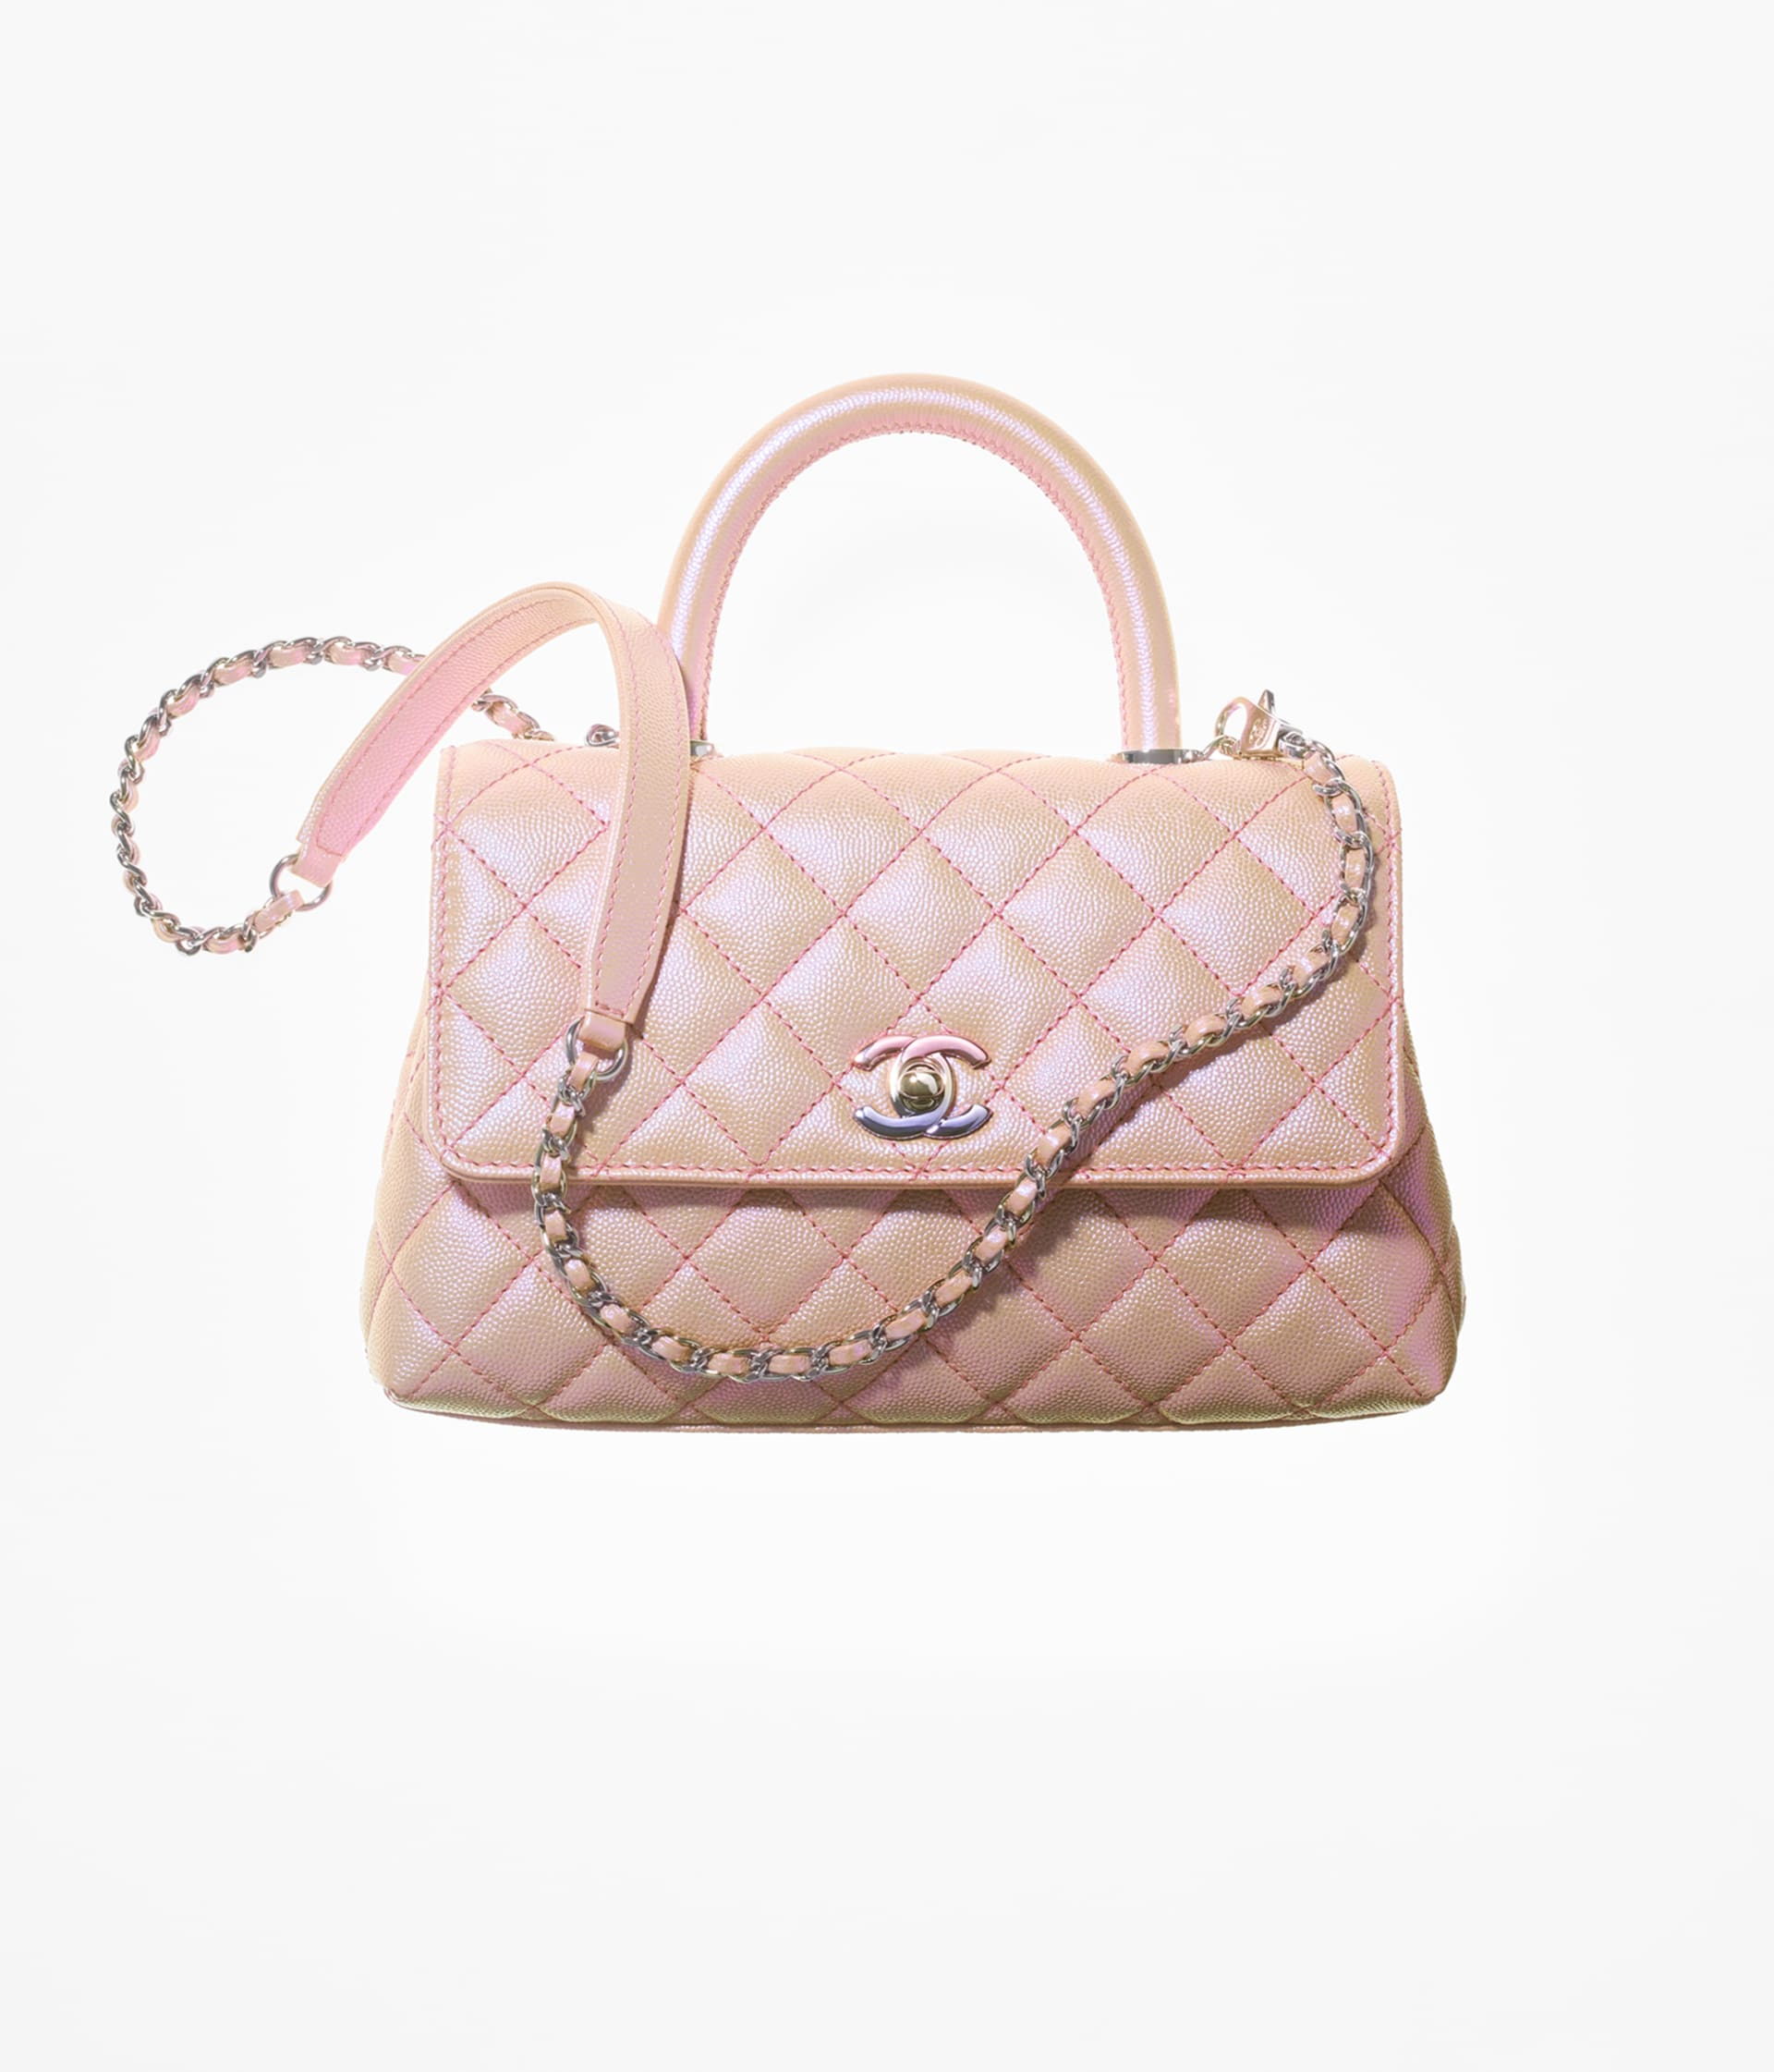 image 1 - Flap Bag with Top Handle - Iridescent Grained Calfskin & Gradient Lacquered Metal - Light Pink